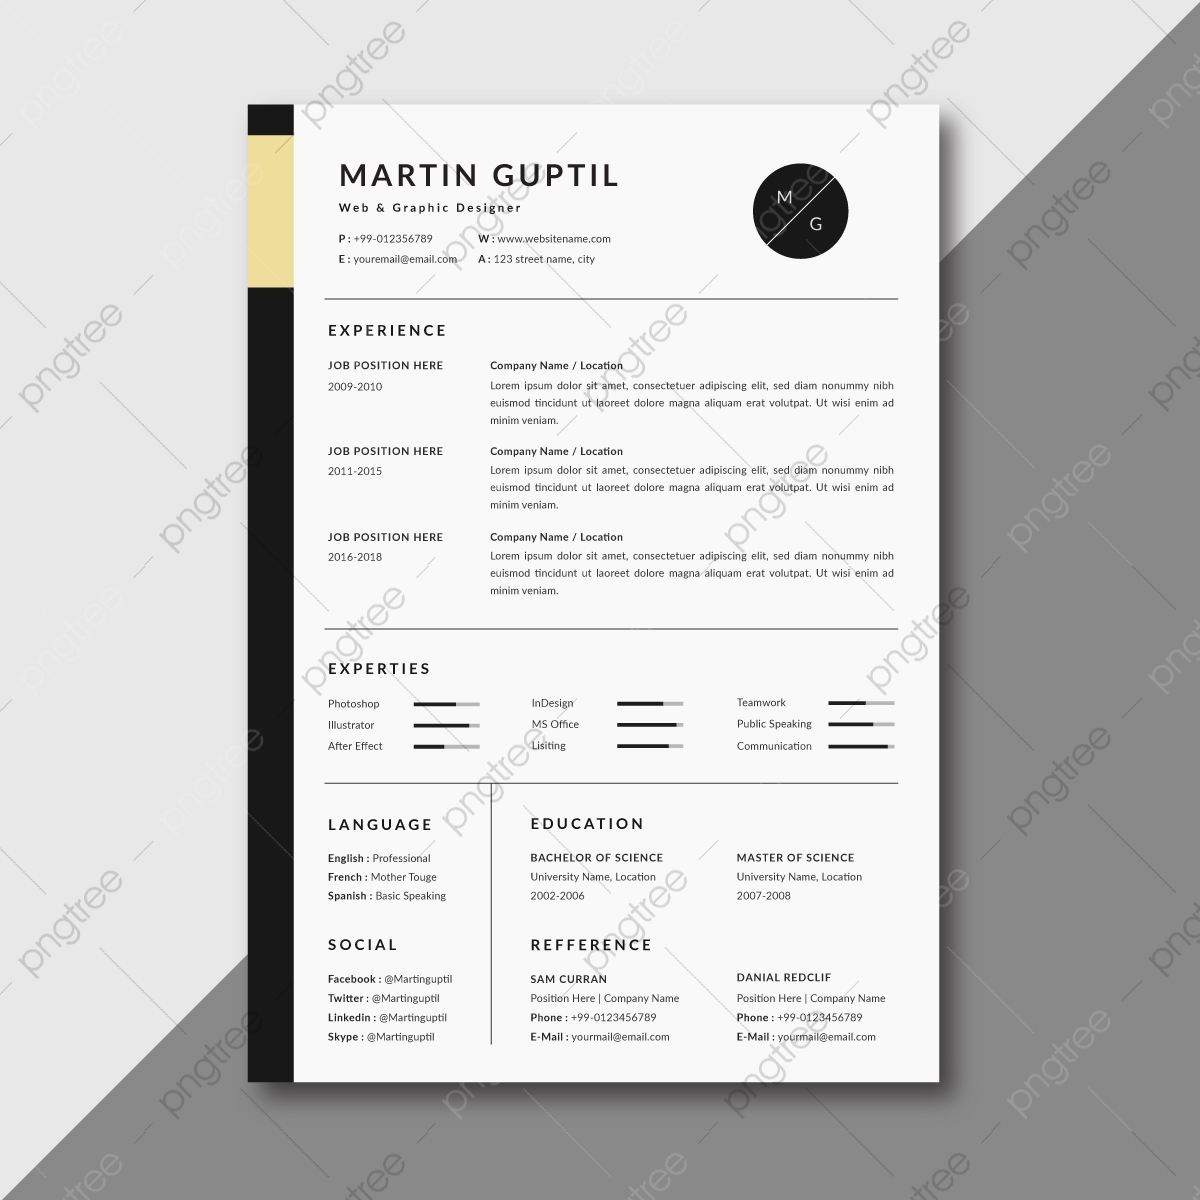 elegant resume template on pngtree image fine dining server skills professional engineer Resume Elegant Resume Template